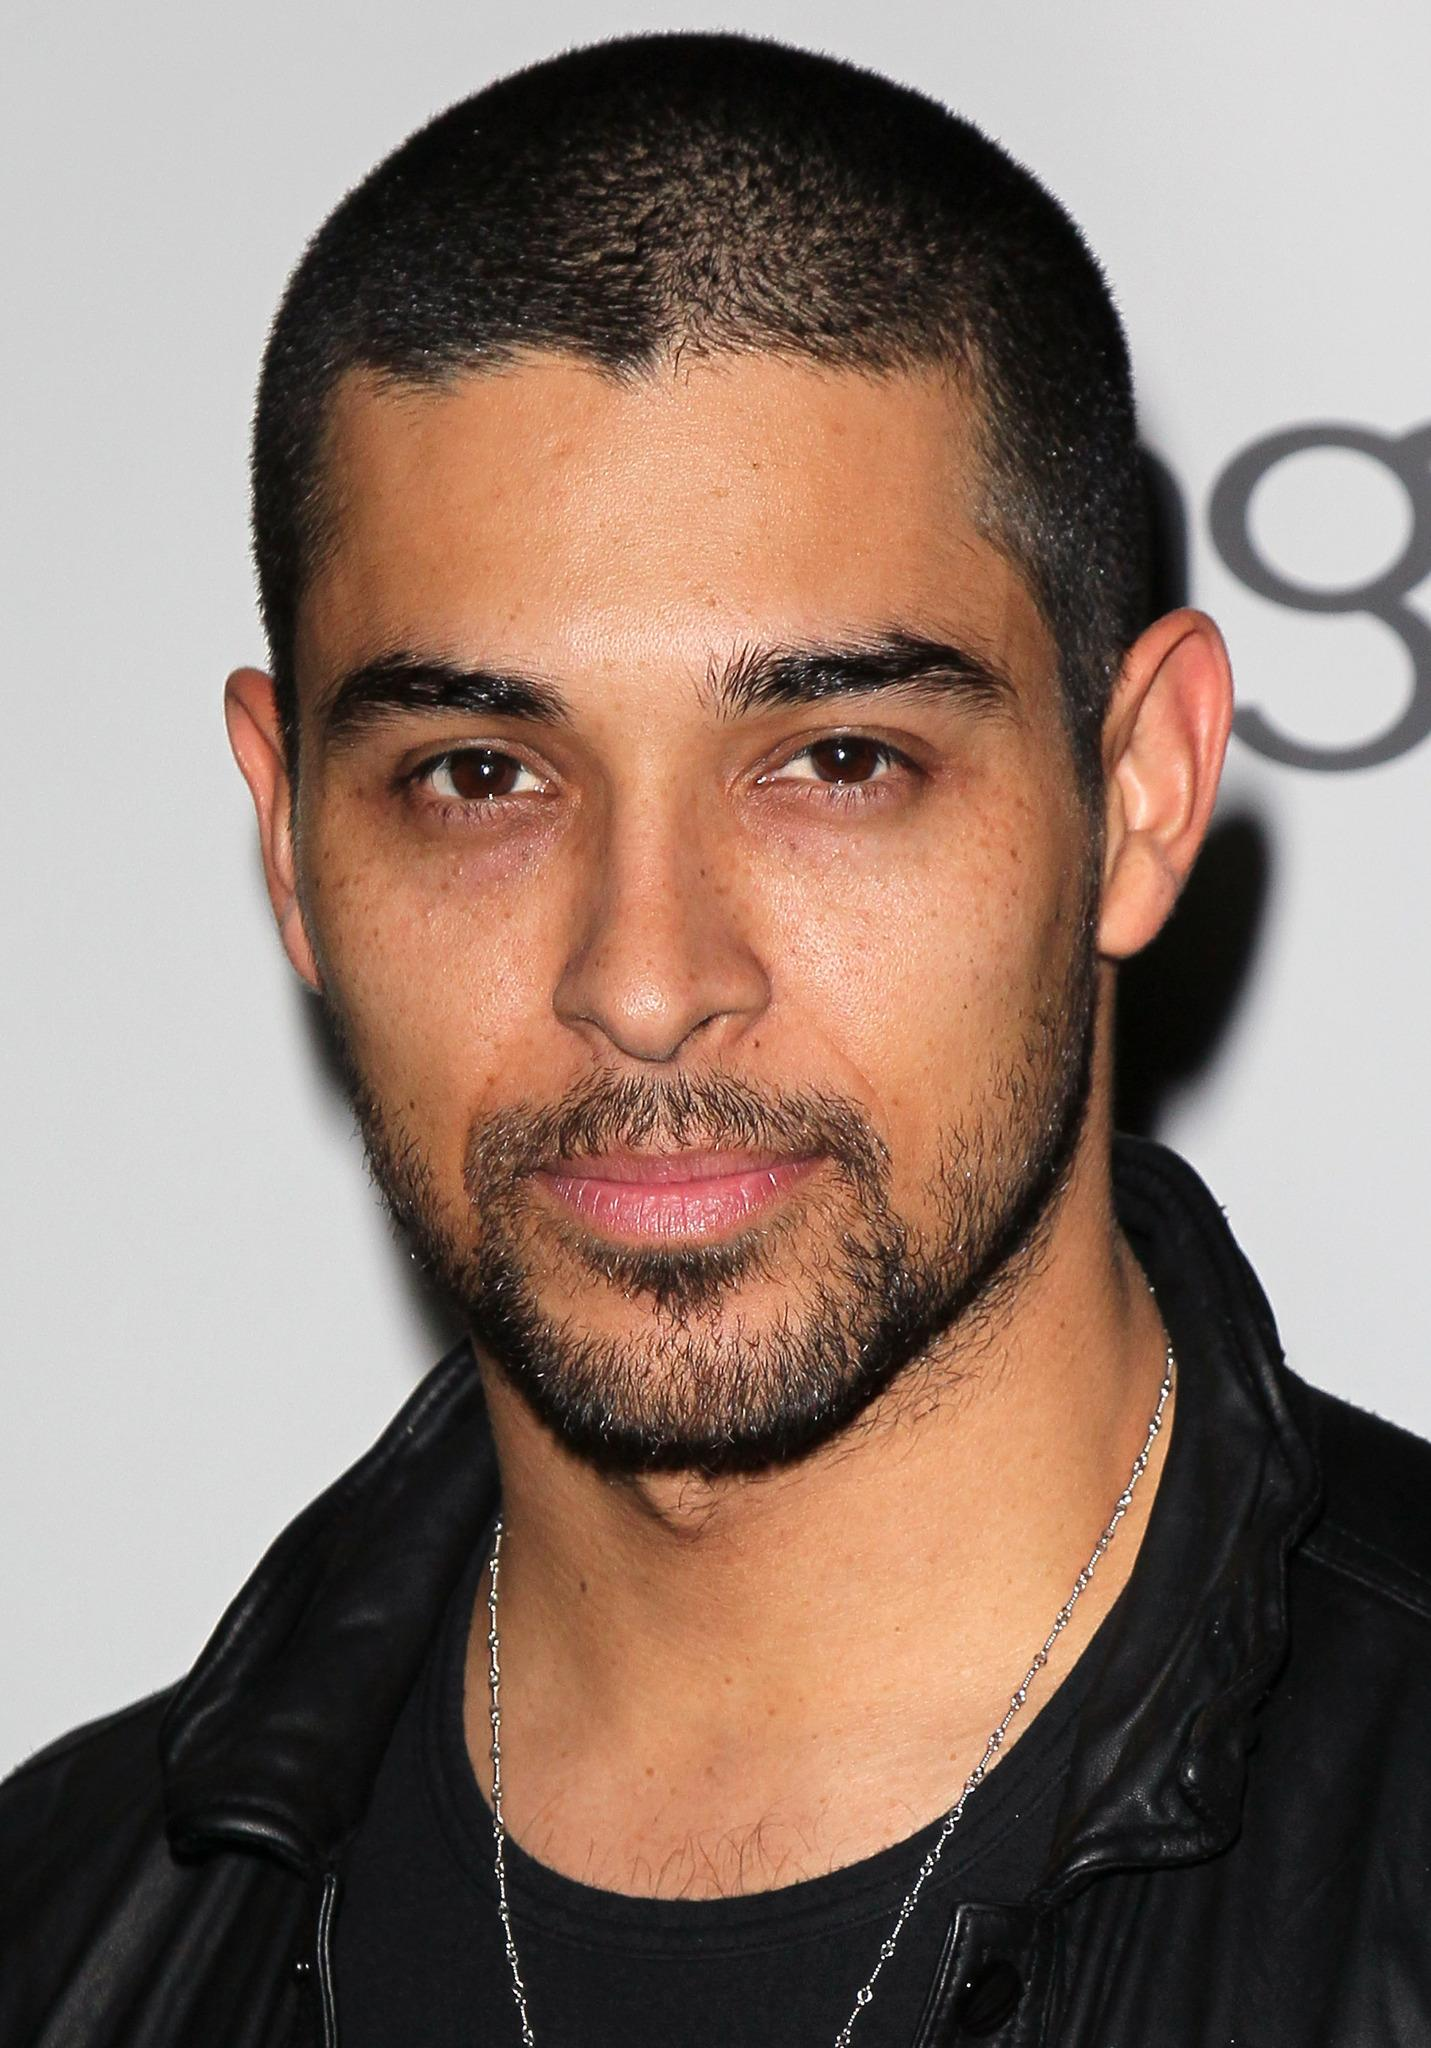 wilmer valderrama shirtless pictureswilmer valderrama tumblr, wilmer valderrama wife, wilmer valderrama gif, wilmer valderrama ncis, wilmer valderrama ancestry, wilmer valderrama song, wilmer valderrama wiki, wilmer valderrama punk'd, wilmer valderrama bio, wilmer valderrama shirtless pictures, wilmer valderrama height, wilmer valderrama instagram, wilmer valderrama and demi lovato, wilmer valderrama grey's anatomy, wilmer valderrama house, wilmer valderrama net worth